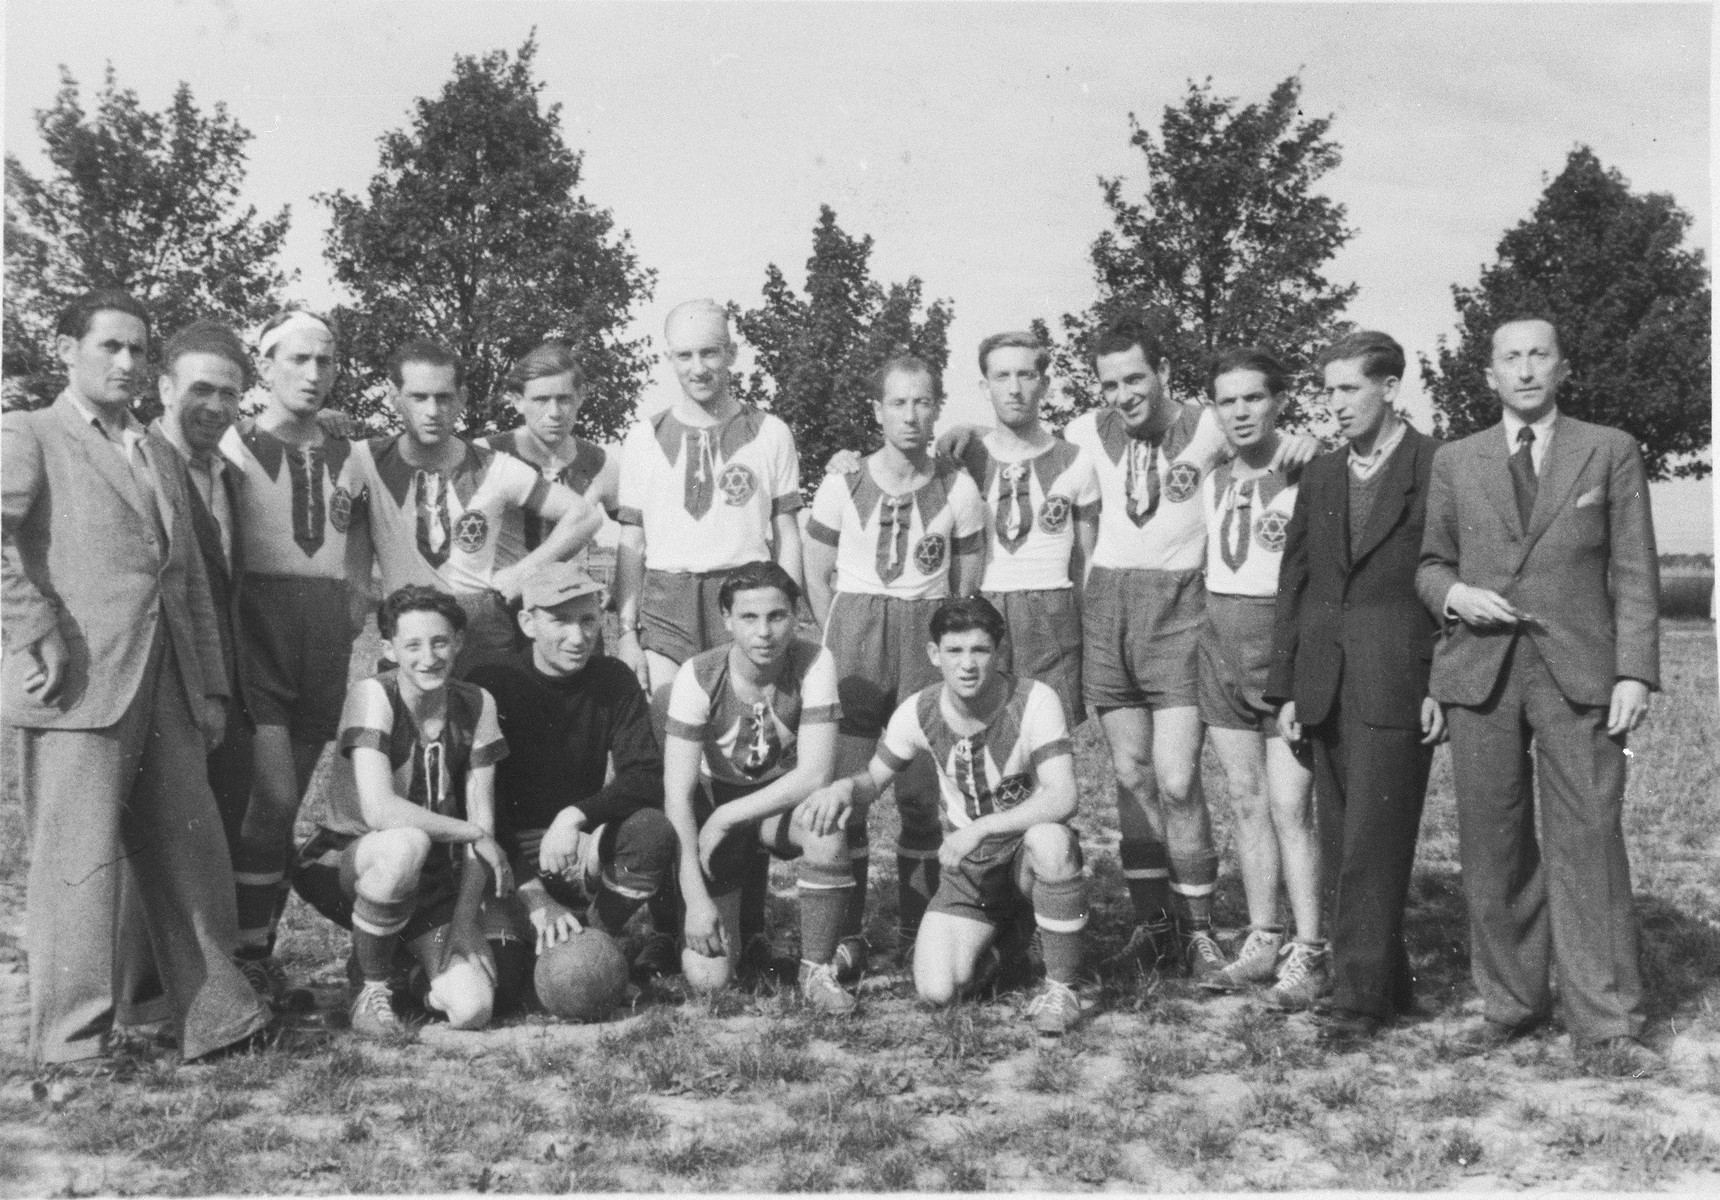 Group portrait of the members of the Zeilsheim displaced persons' soccer team.